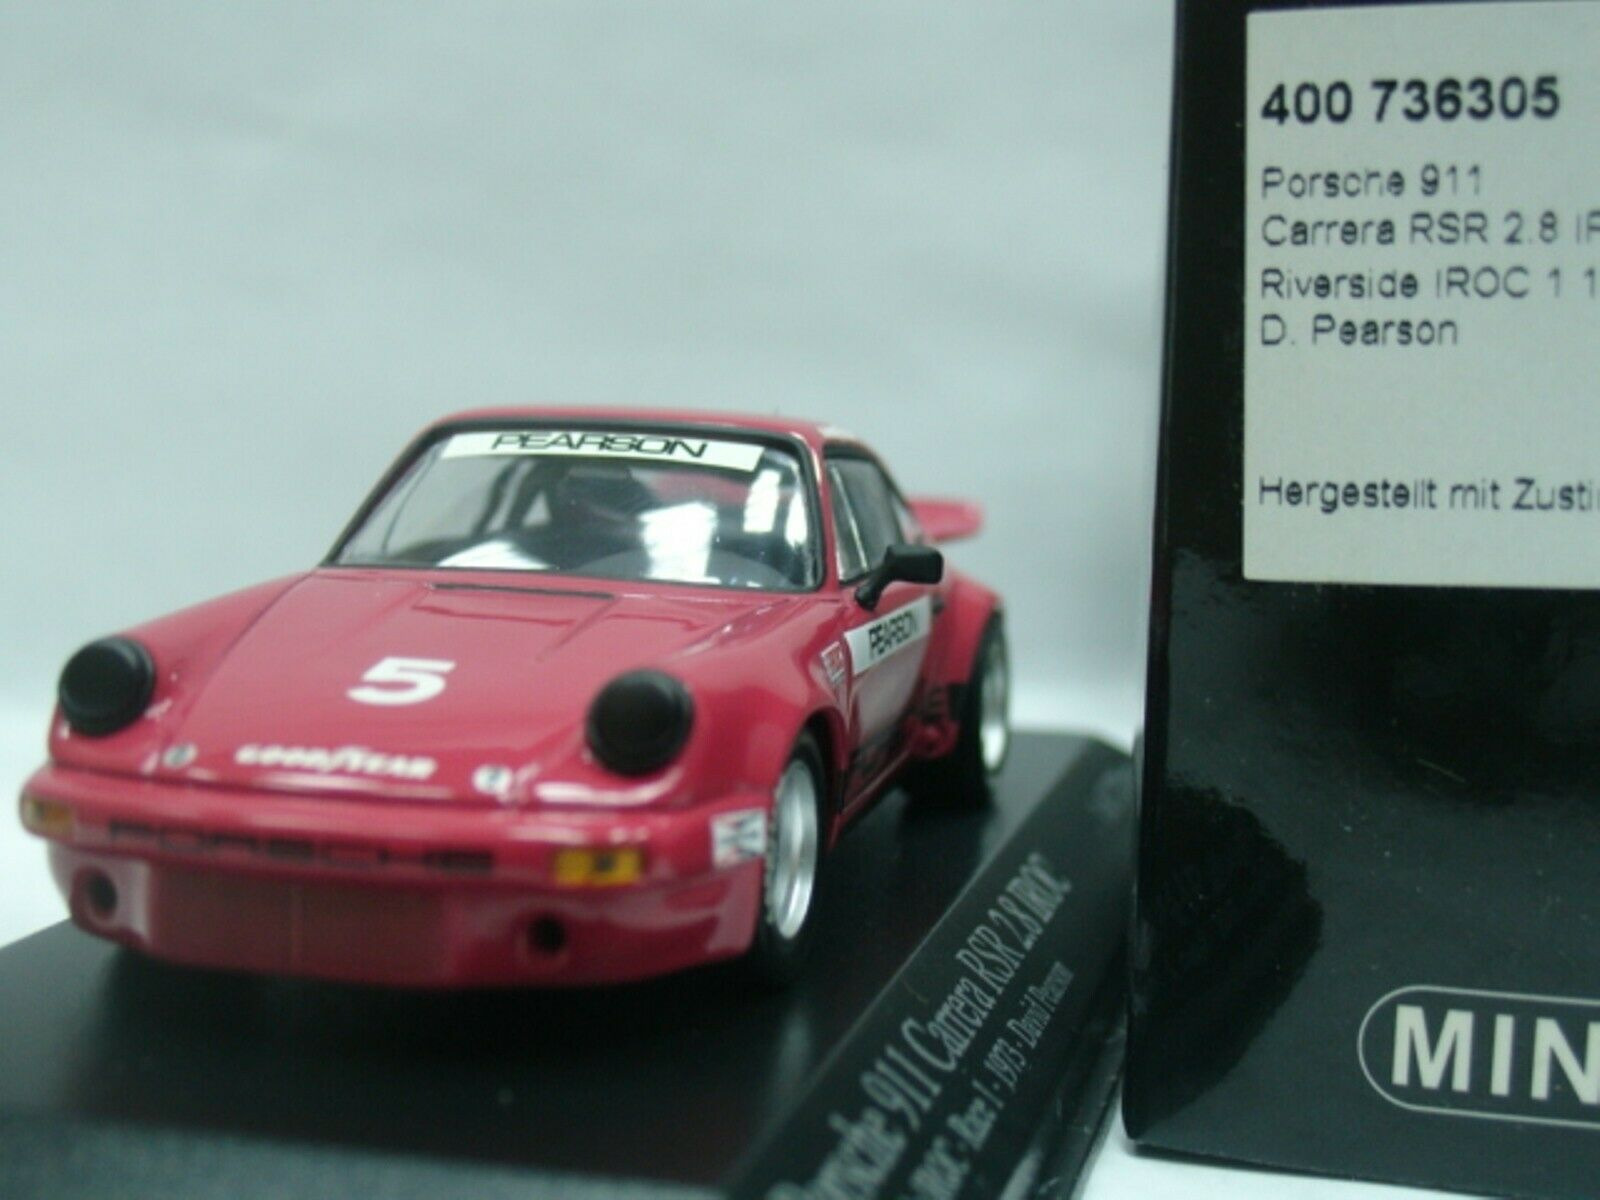 WOW EXTREMELY RARE Porsche 911 RSR 3.0 Pearson IROC 1973 1 43 Minichamps-GT2